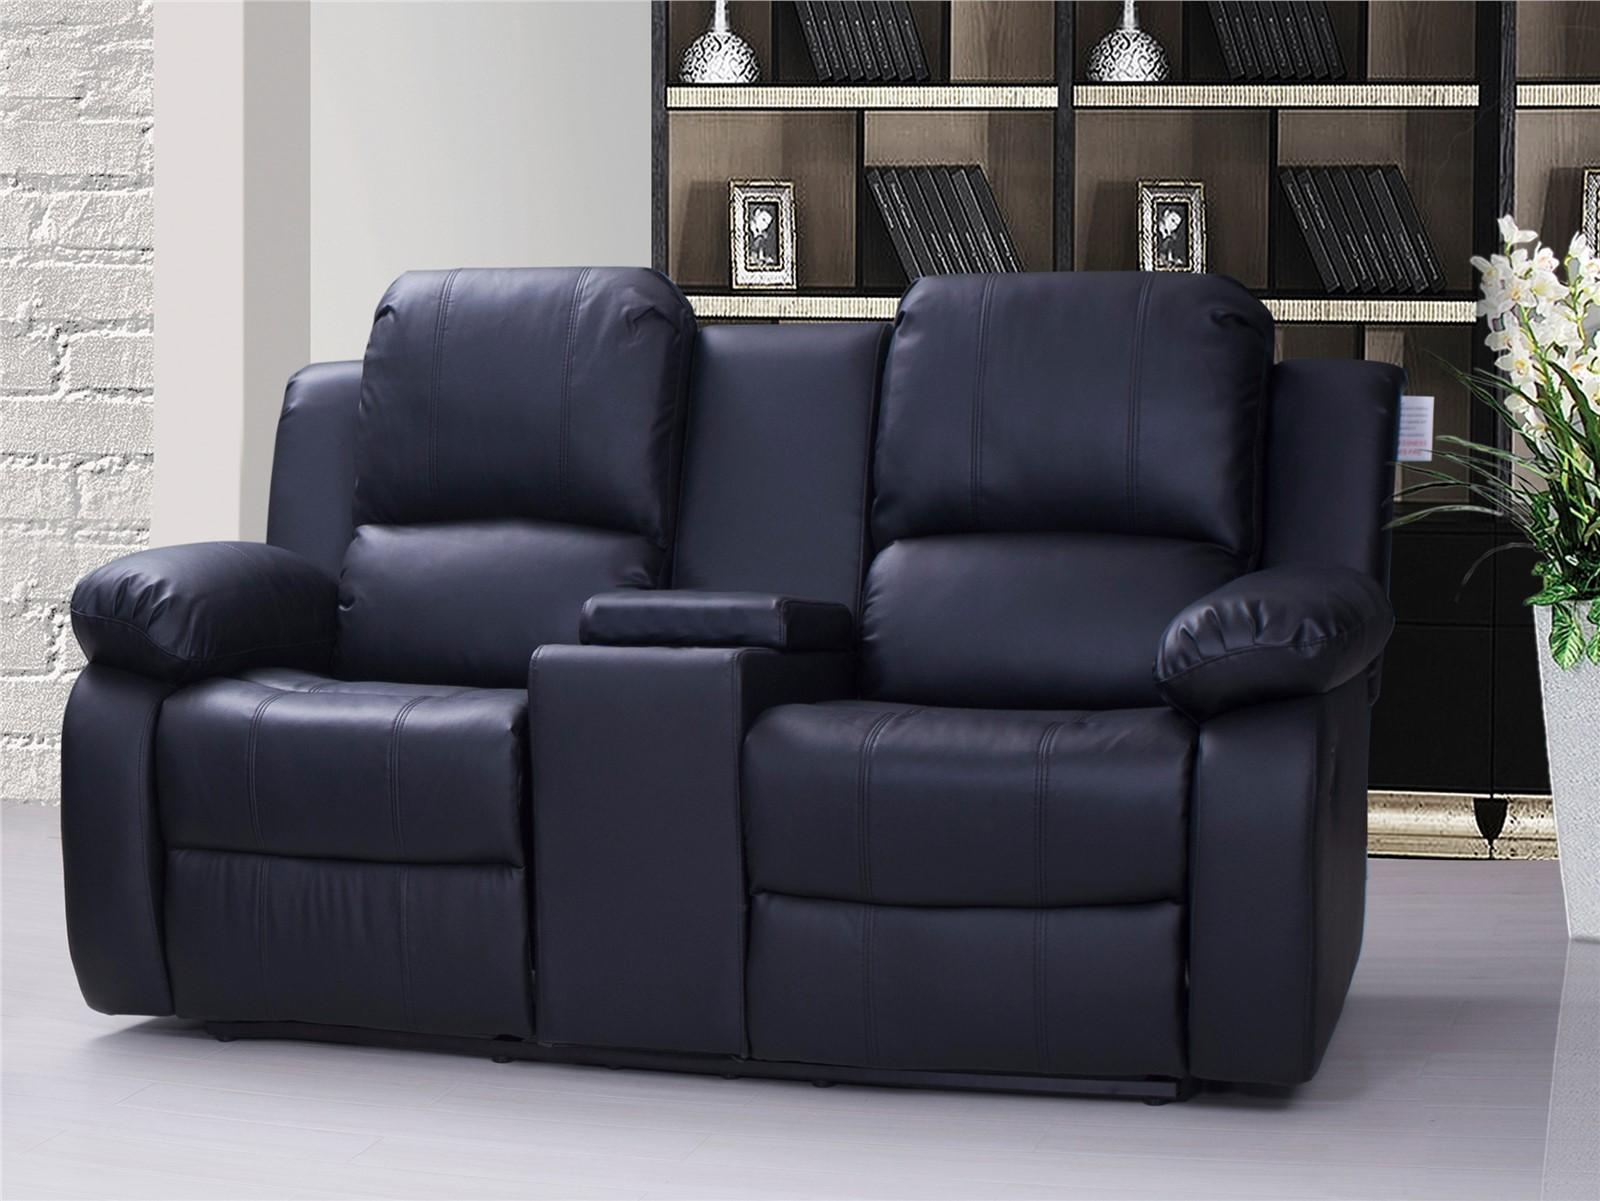 Black Reclining Sofa With Console | Tehranmix Decoration Regarding Sofas With Console (View 5 of 20)